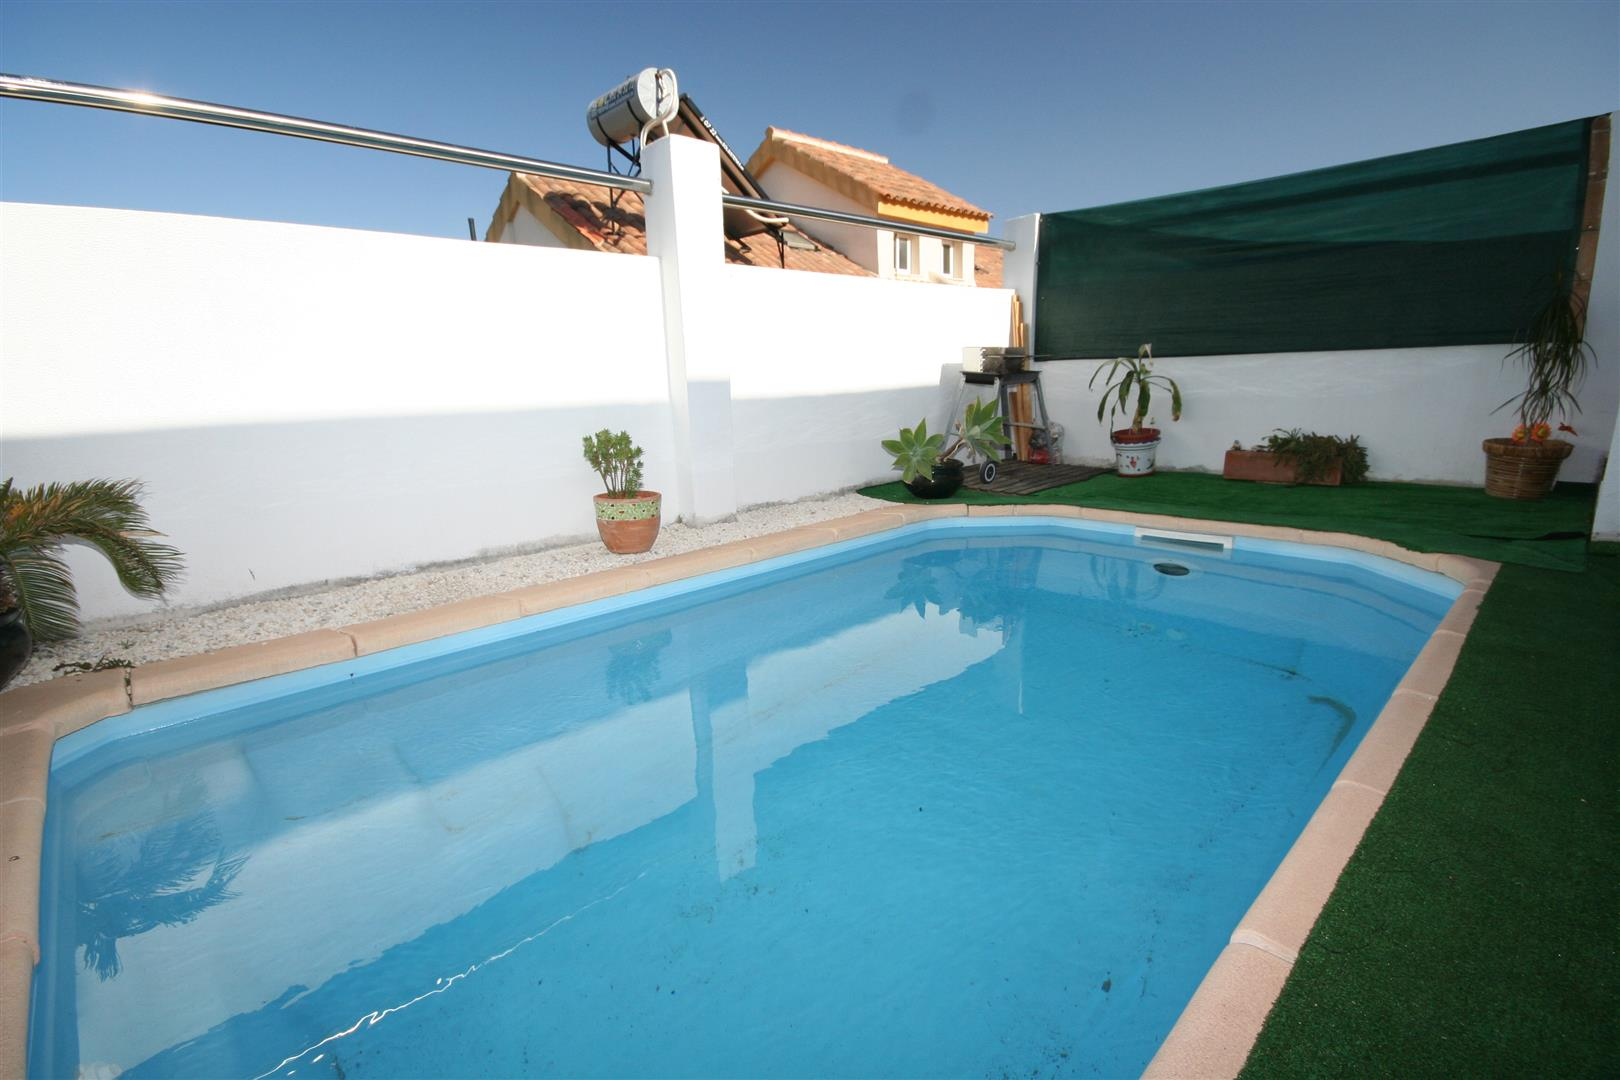 townhouse for sale in Benalmadena Pueblo - Pool